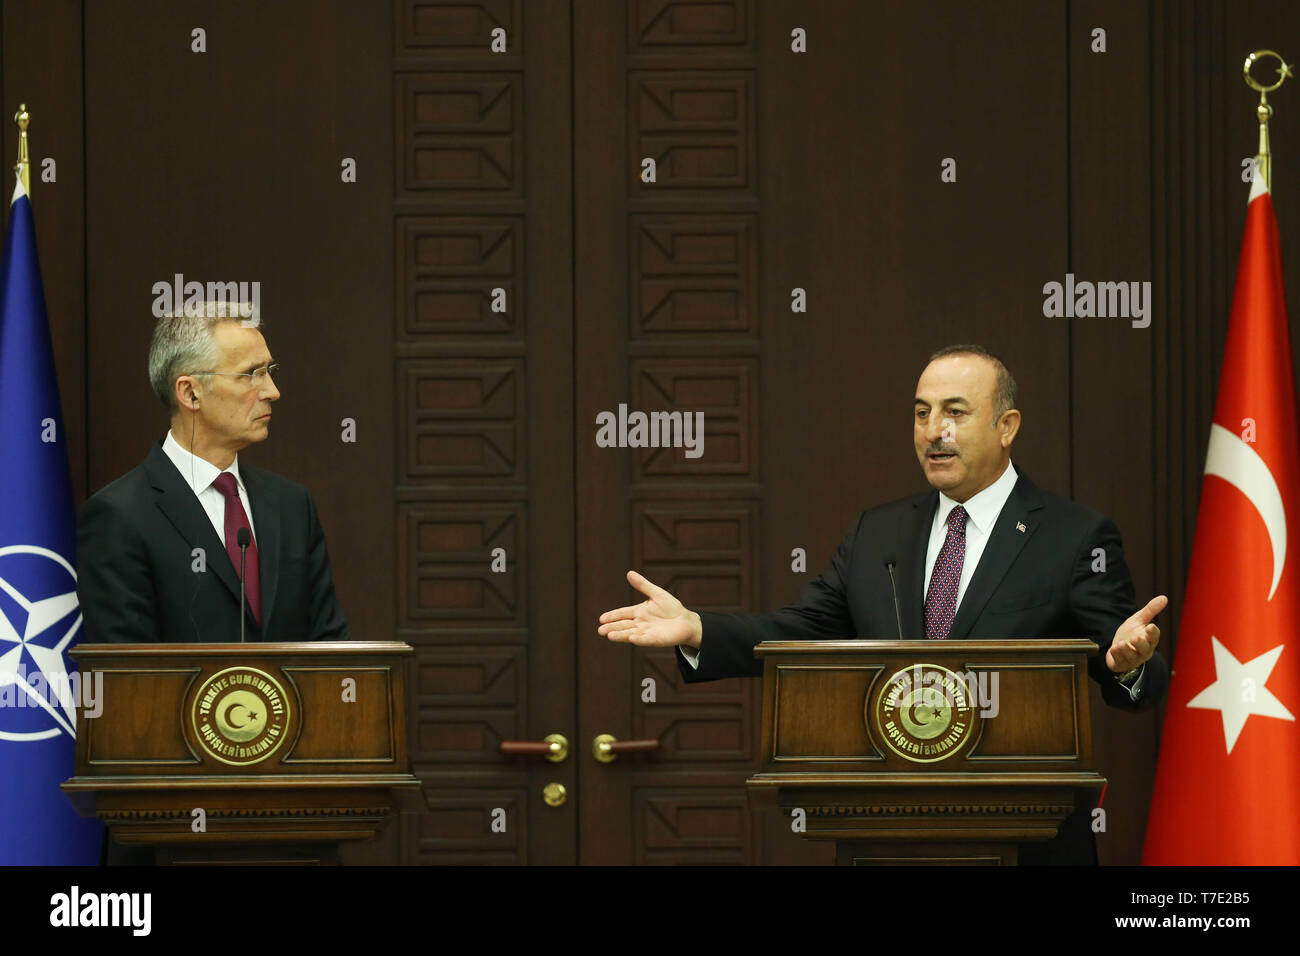 Ankara, Turkey. 6th May, 2019. NATO Secretary General Jens Stoltenberg (L) and Turkish Foreign Minister Mevlut Cavusoglu attend a press conference in Ankara, Turkey, on May 6, 2019. NATO Secretary General Jens Stoltenberg said on Monday that he is worried about Turkey's plans to deploy the Russian S-400 missile defense system despite of U.S. objection. Credit: Mustafa Kaya/Xinhua/Alamy Live News - Stock Image